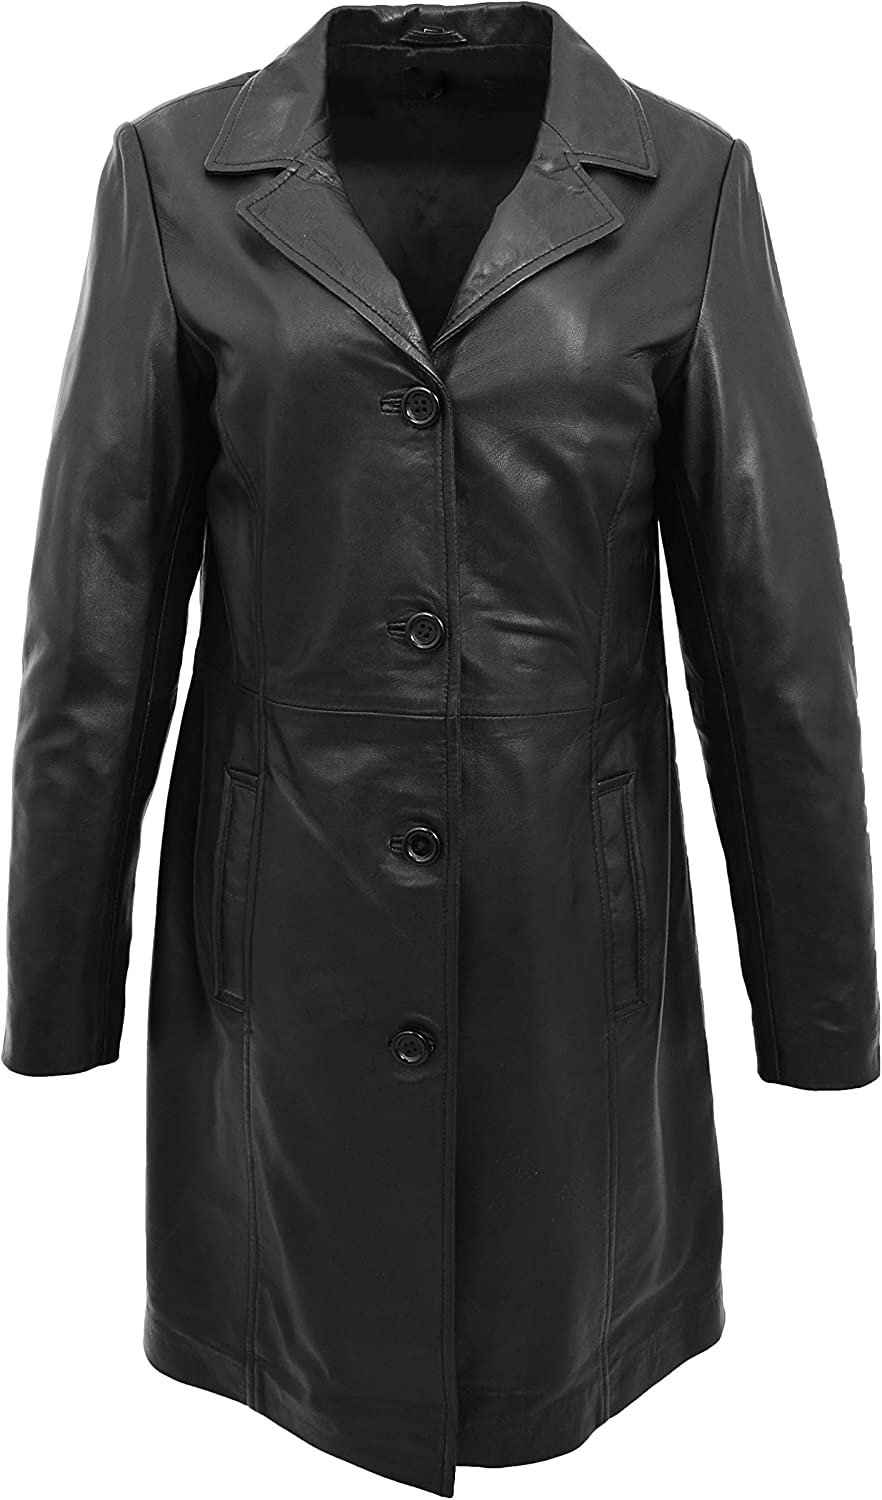 A1 FASHION GOODS Ladies 3 4 Long Classic Fitted Soft Black Real Leather Jacket Knee Length Button Coat Laura